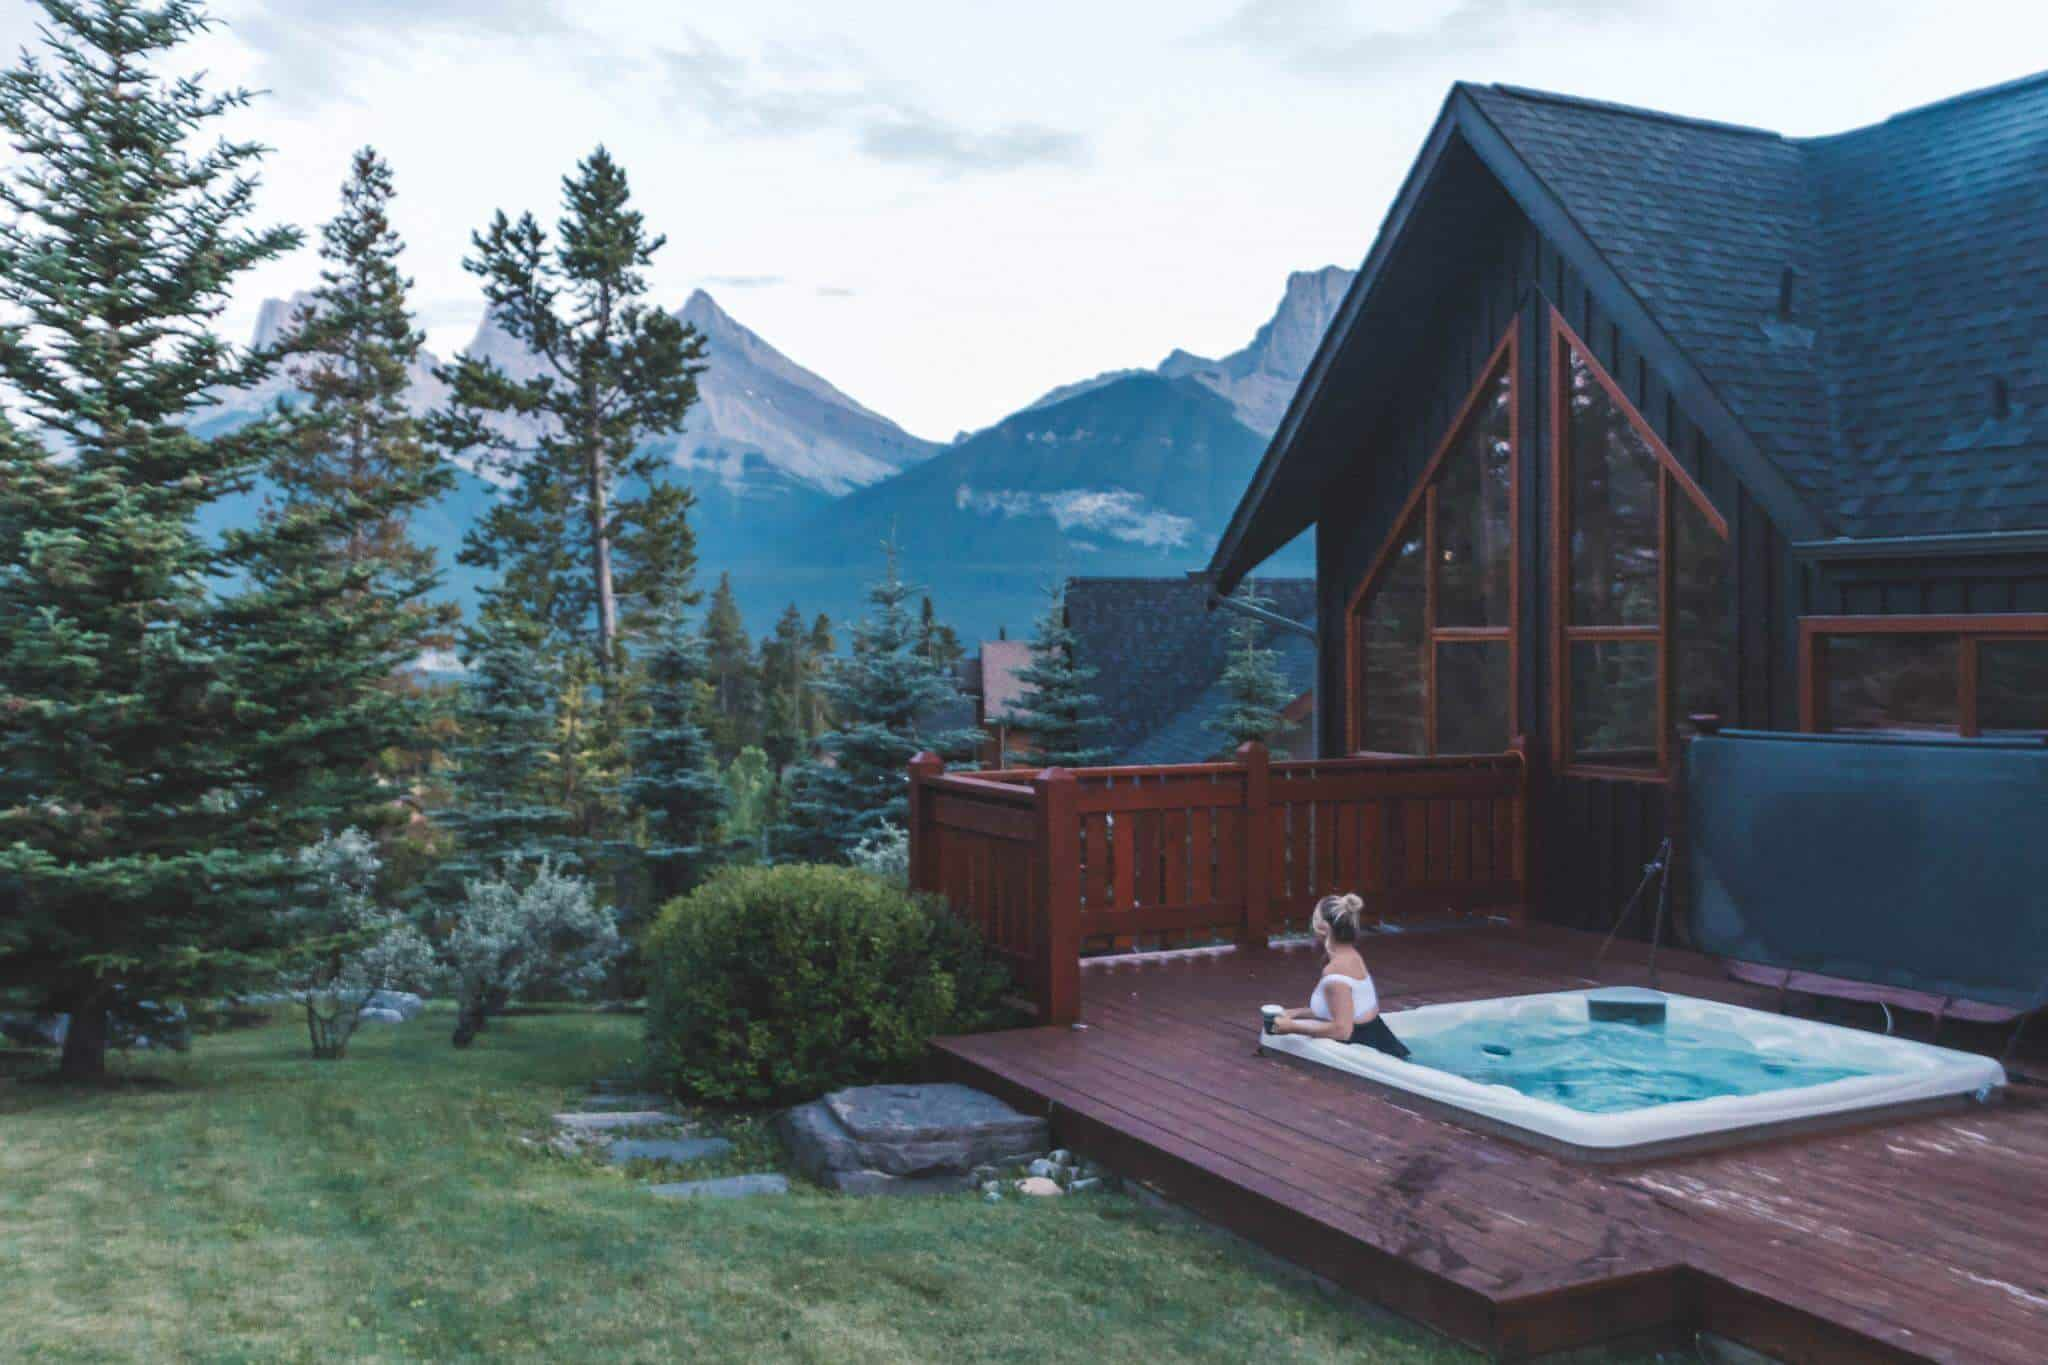 Hot tub against the canadian mountains